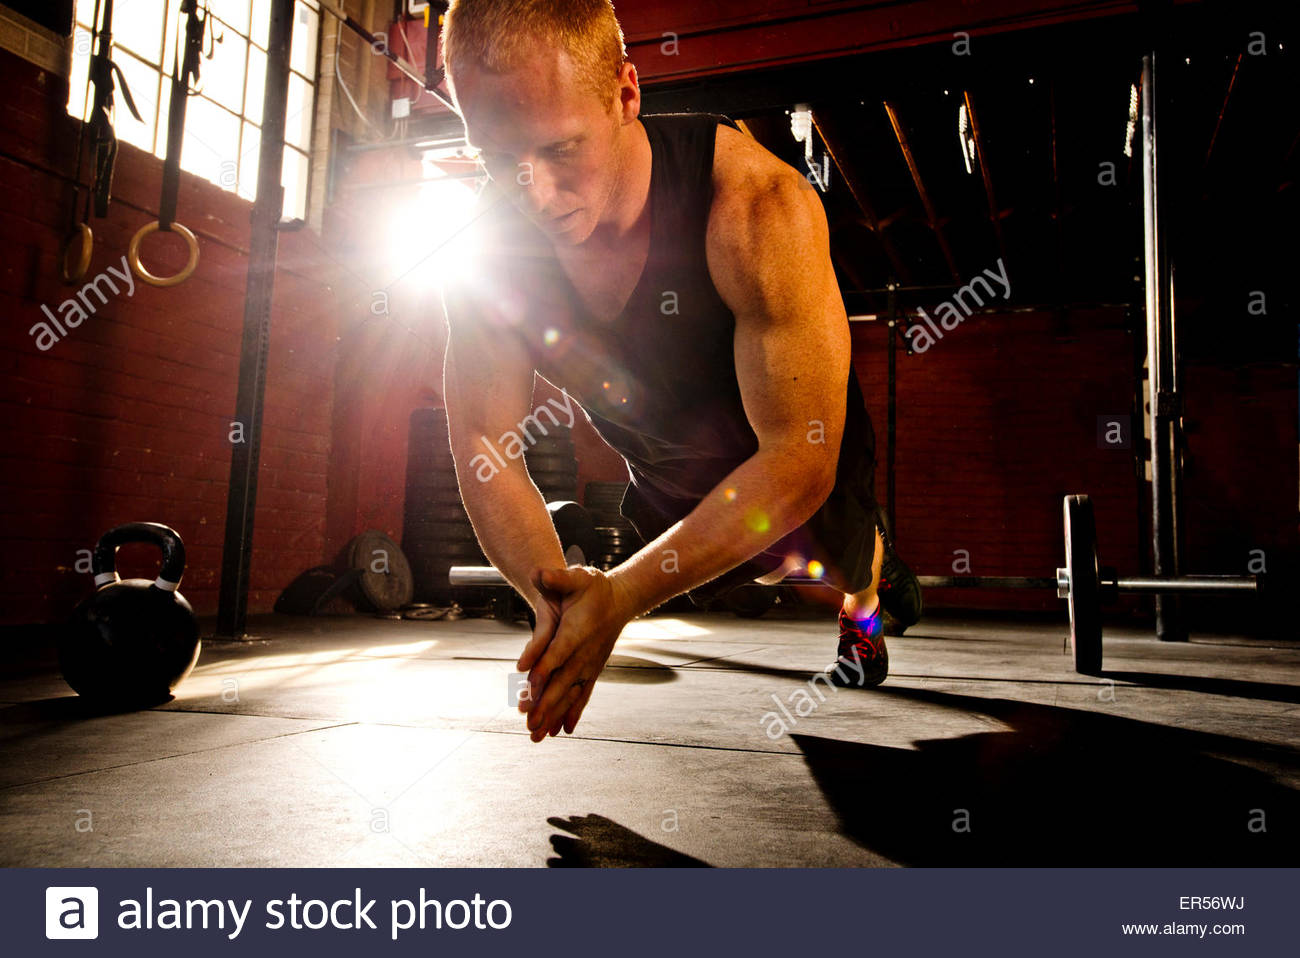 A crossfit athlete works out in a crossfit gym. - Stock Image